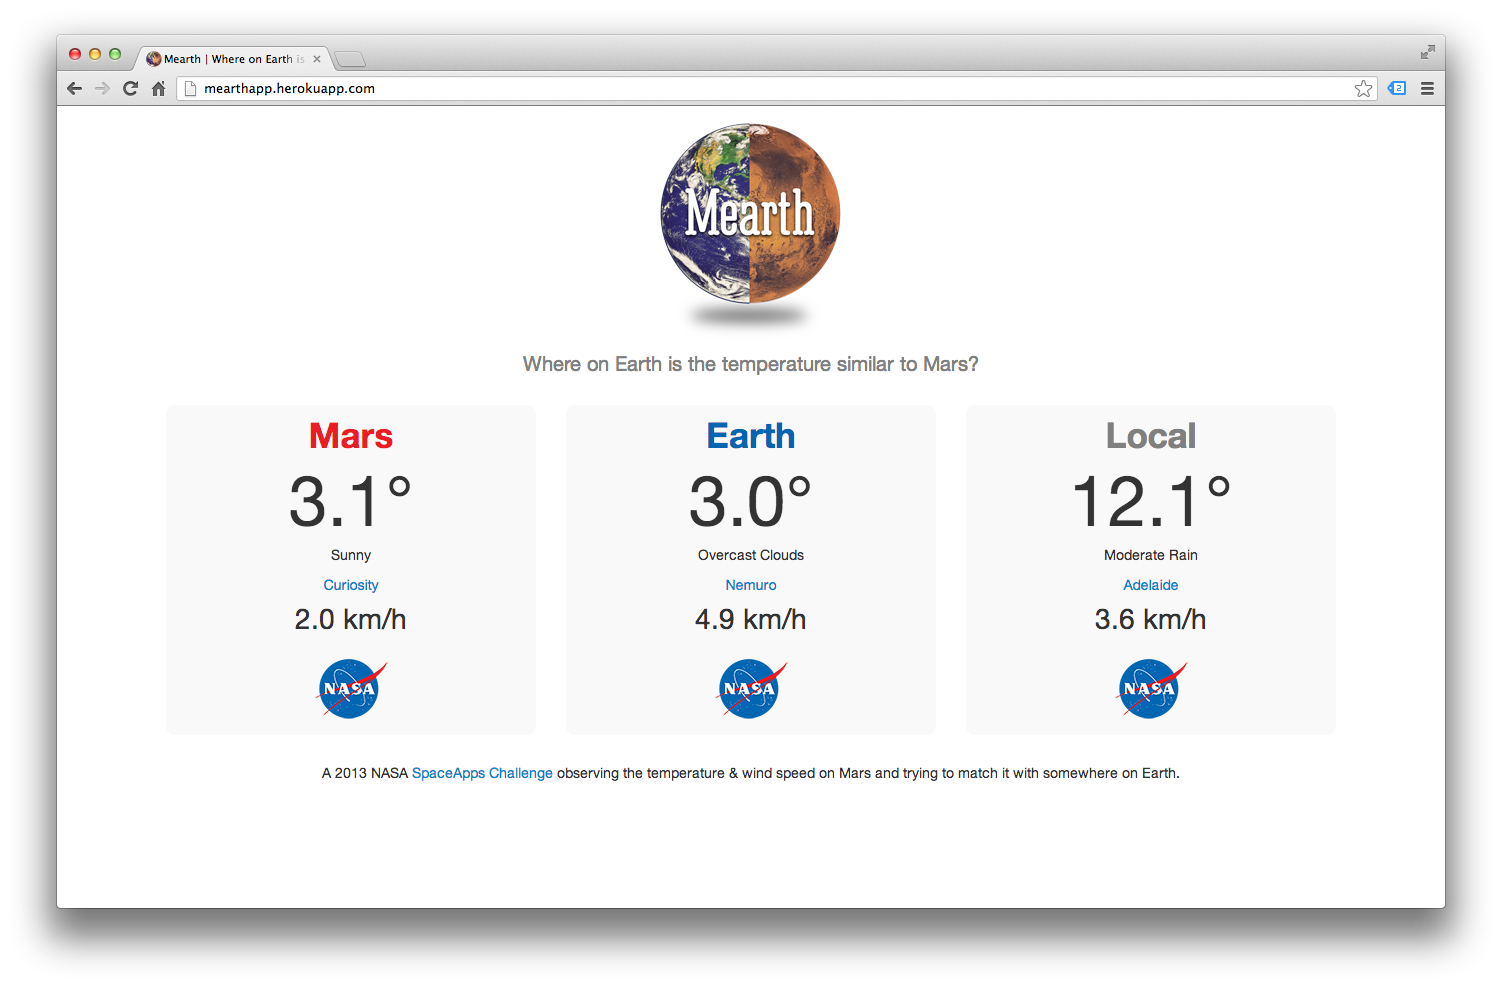 Mearth prototype app